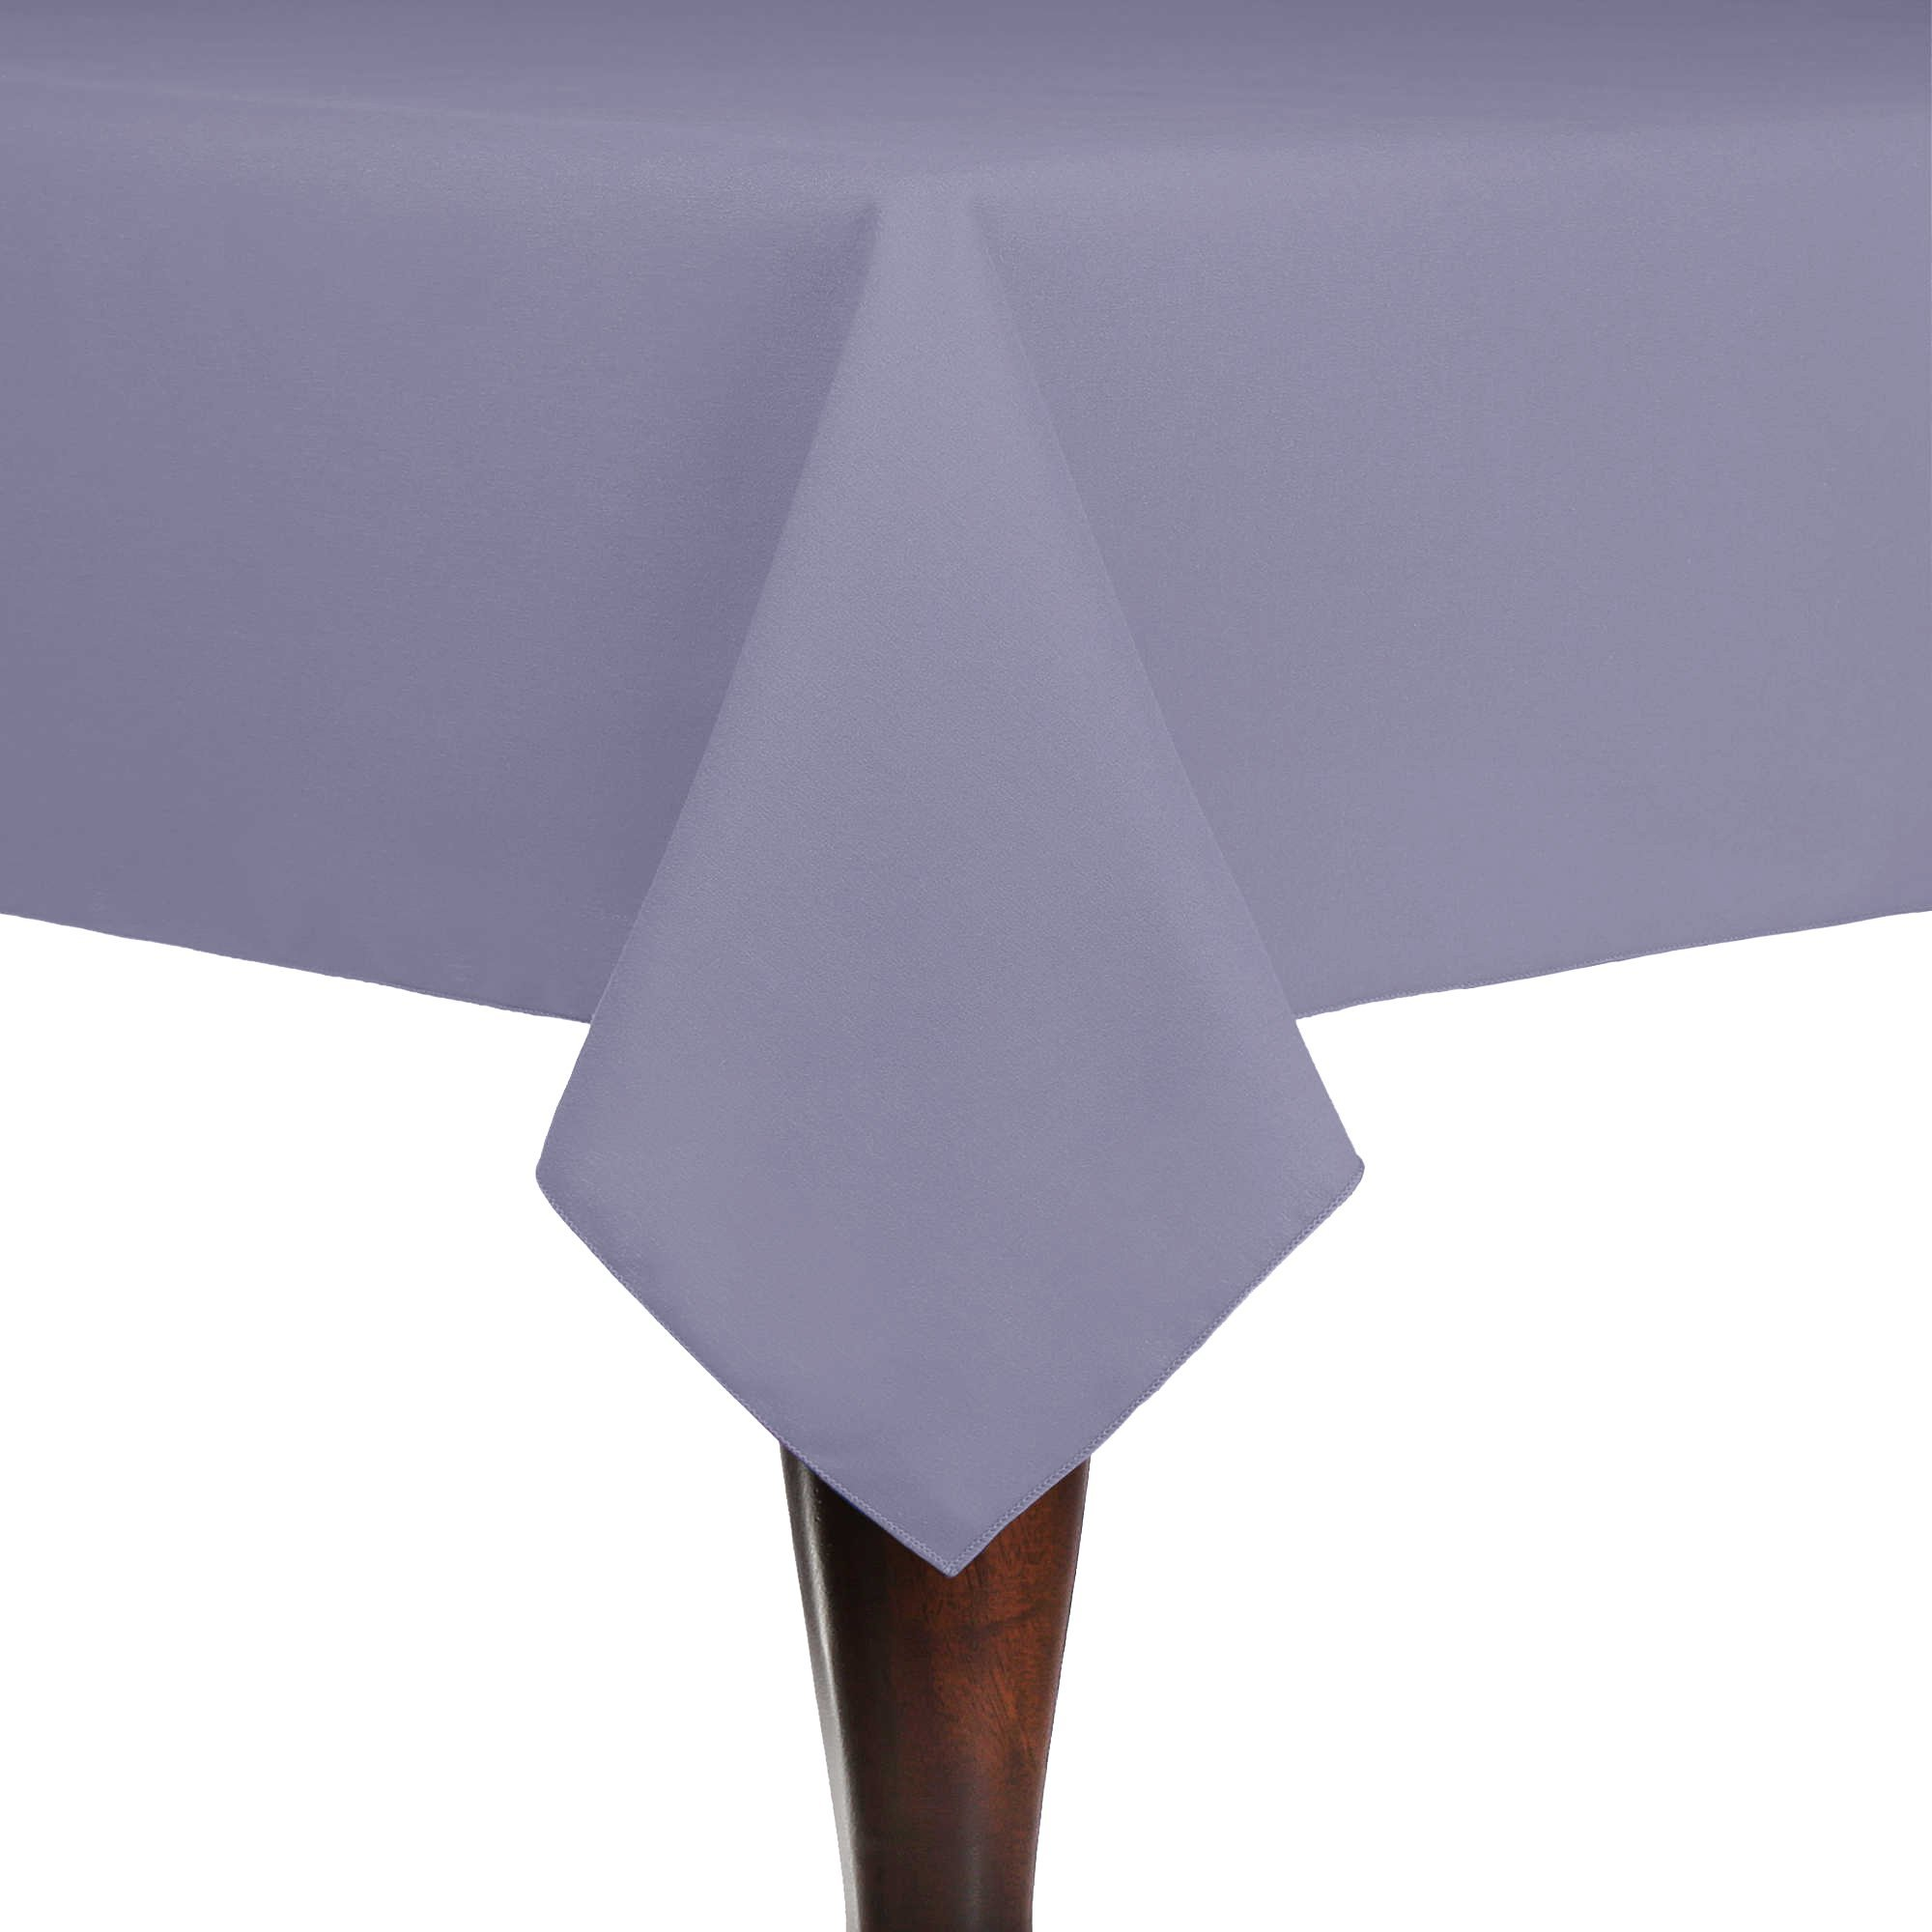 Ultimate Textile (10 Pack) Cotton-feel 60 x 90-Inch Rectangular Tablecloth - for Wedding and Banquet, Hotel or Home Fine Dining use, Lilac Light Purple